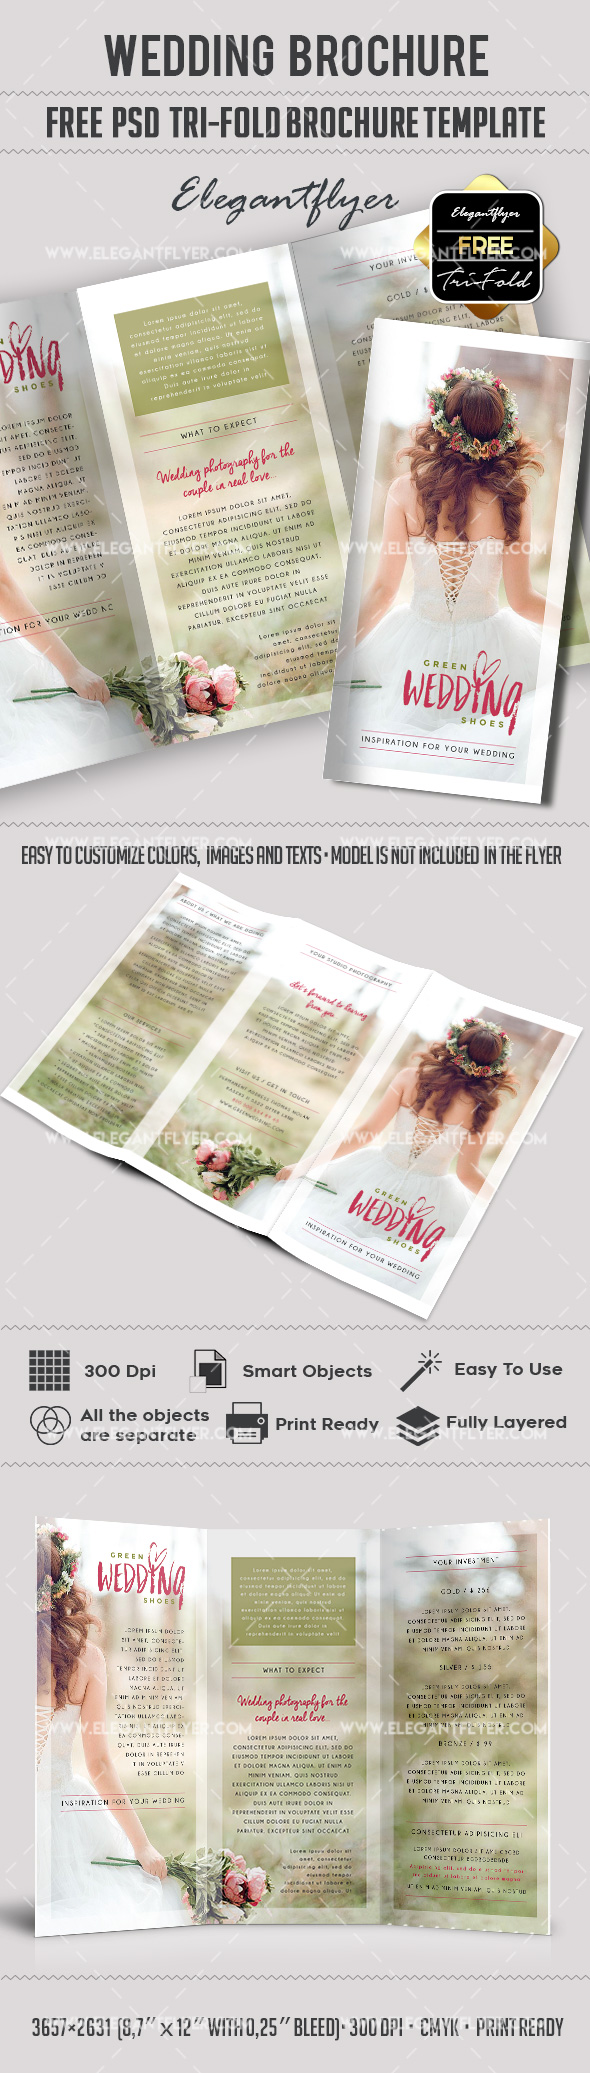 tri fold brochure template psd wedding free tri fold psd brochure template by